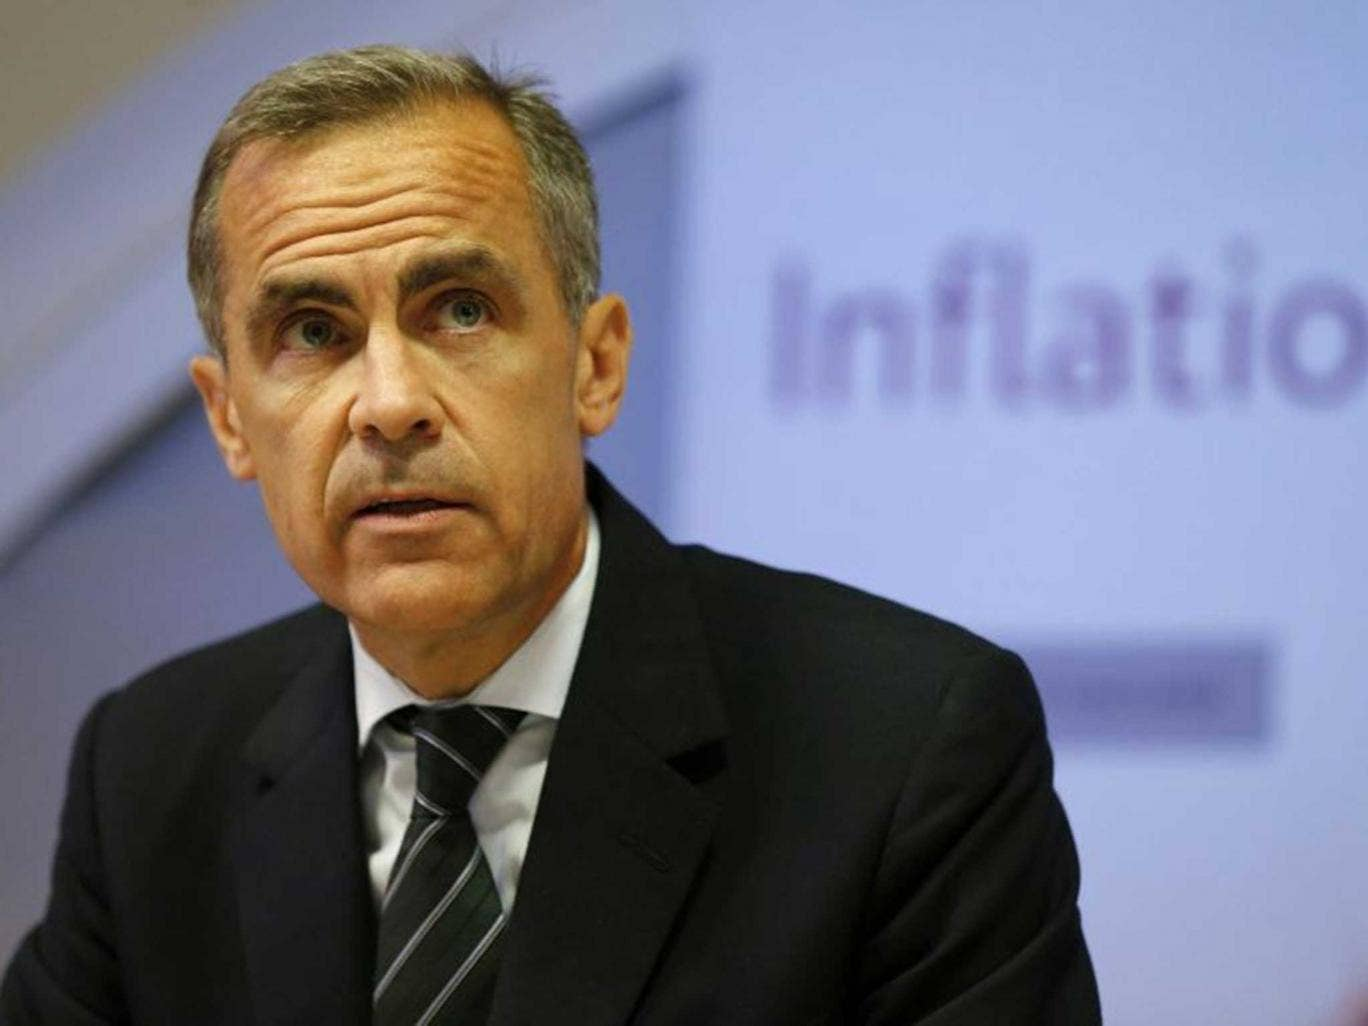 Mark Carney lamented 'remarkably weak' pay growth at last week's Inflation Report after claiming in May it could hit 2.5 per cent this year